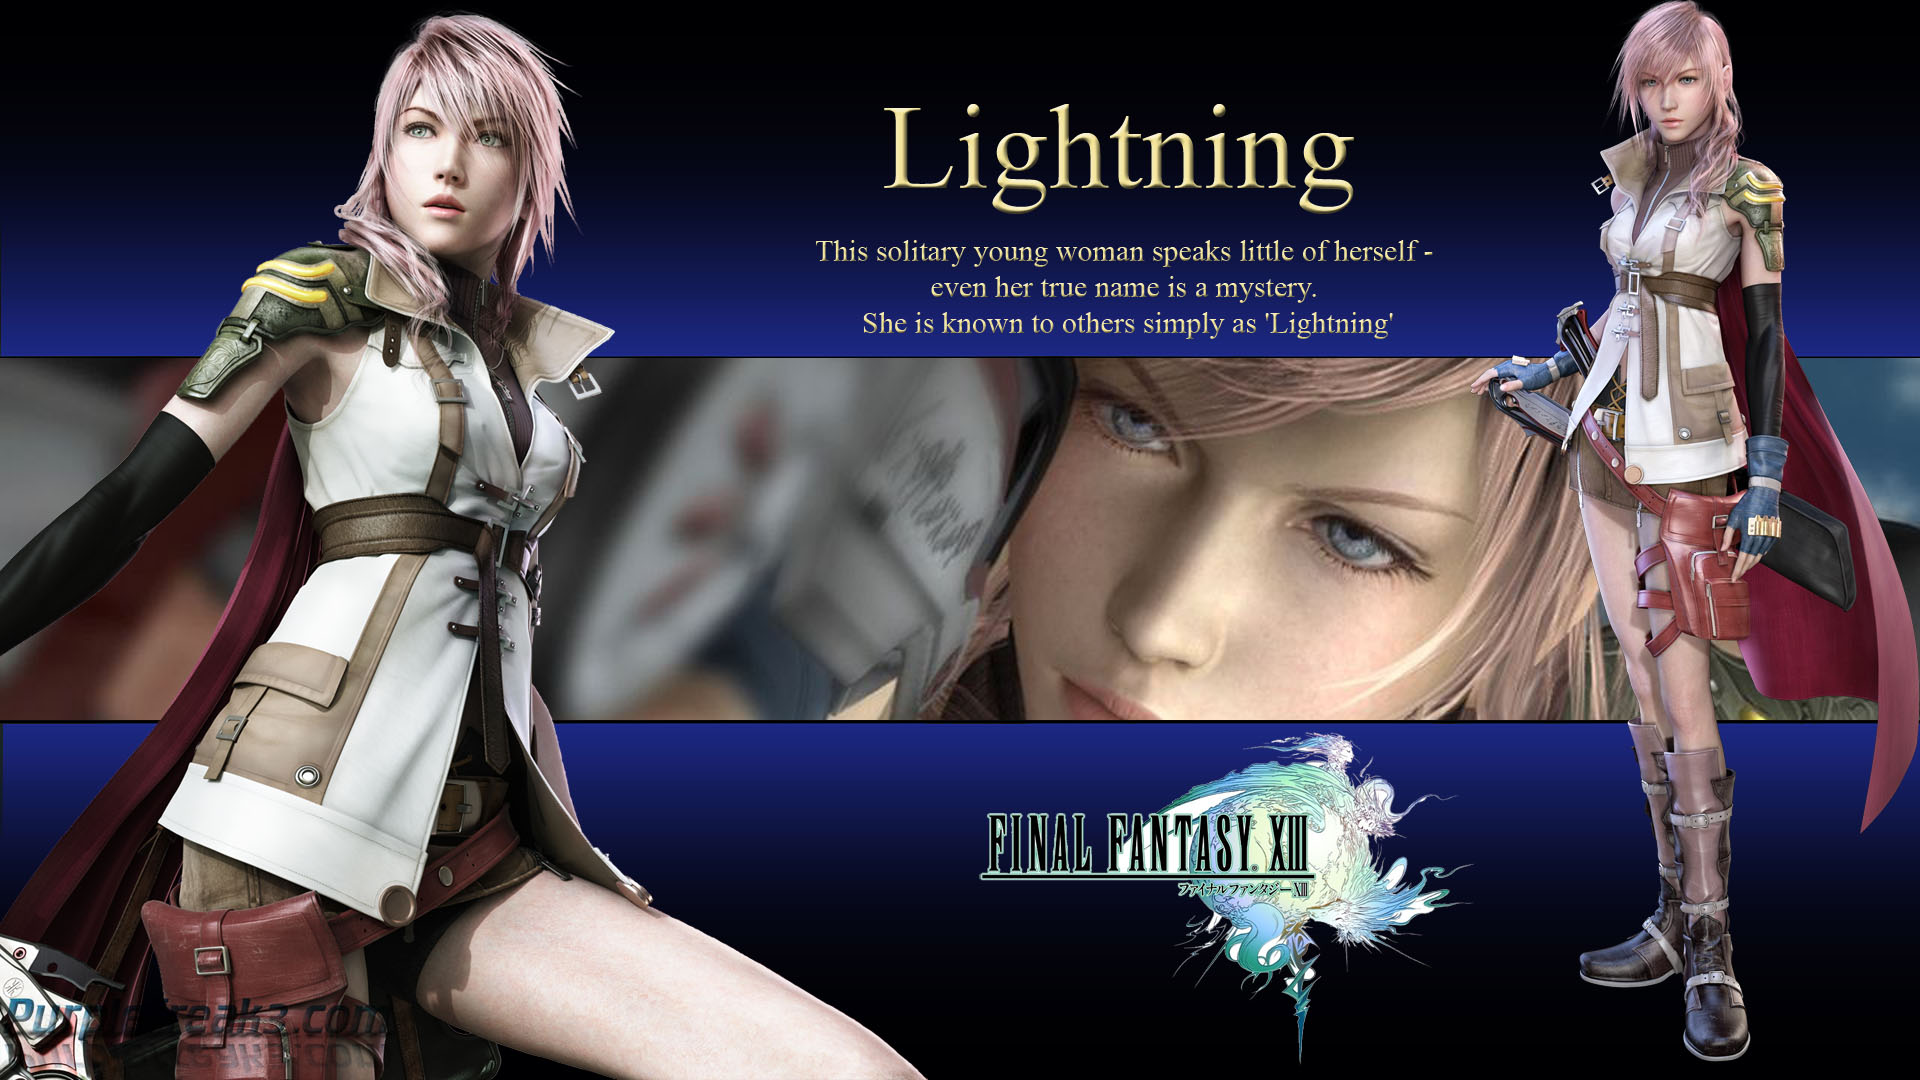 Final Fantasy XIII Lightning HD Wallpaper